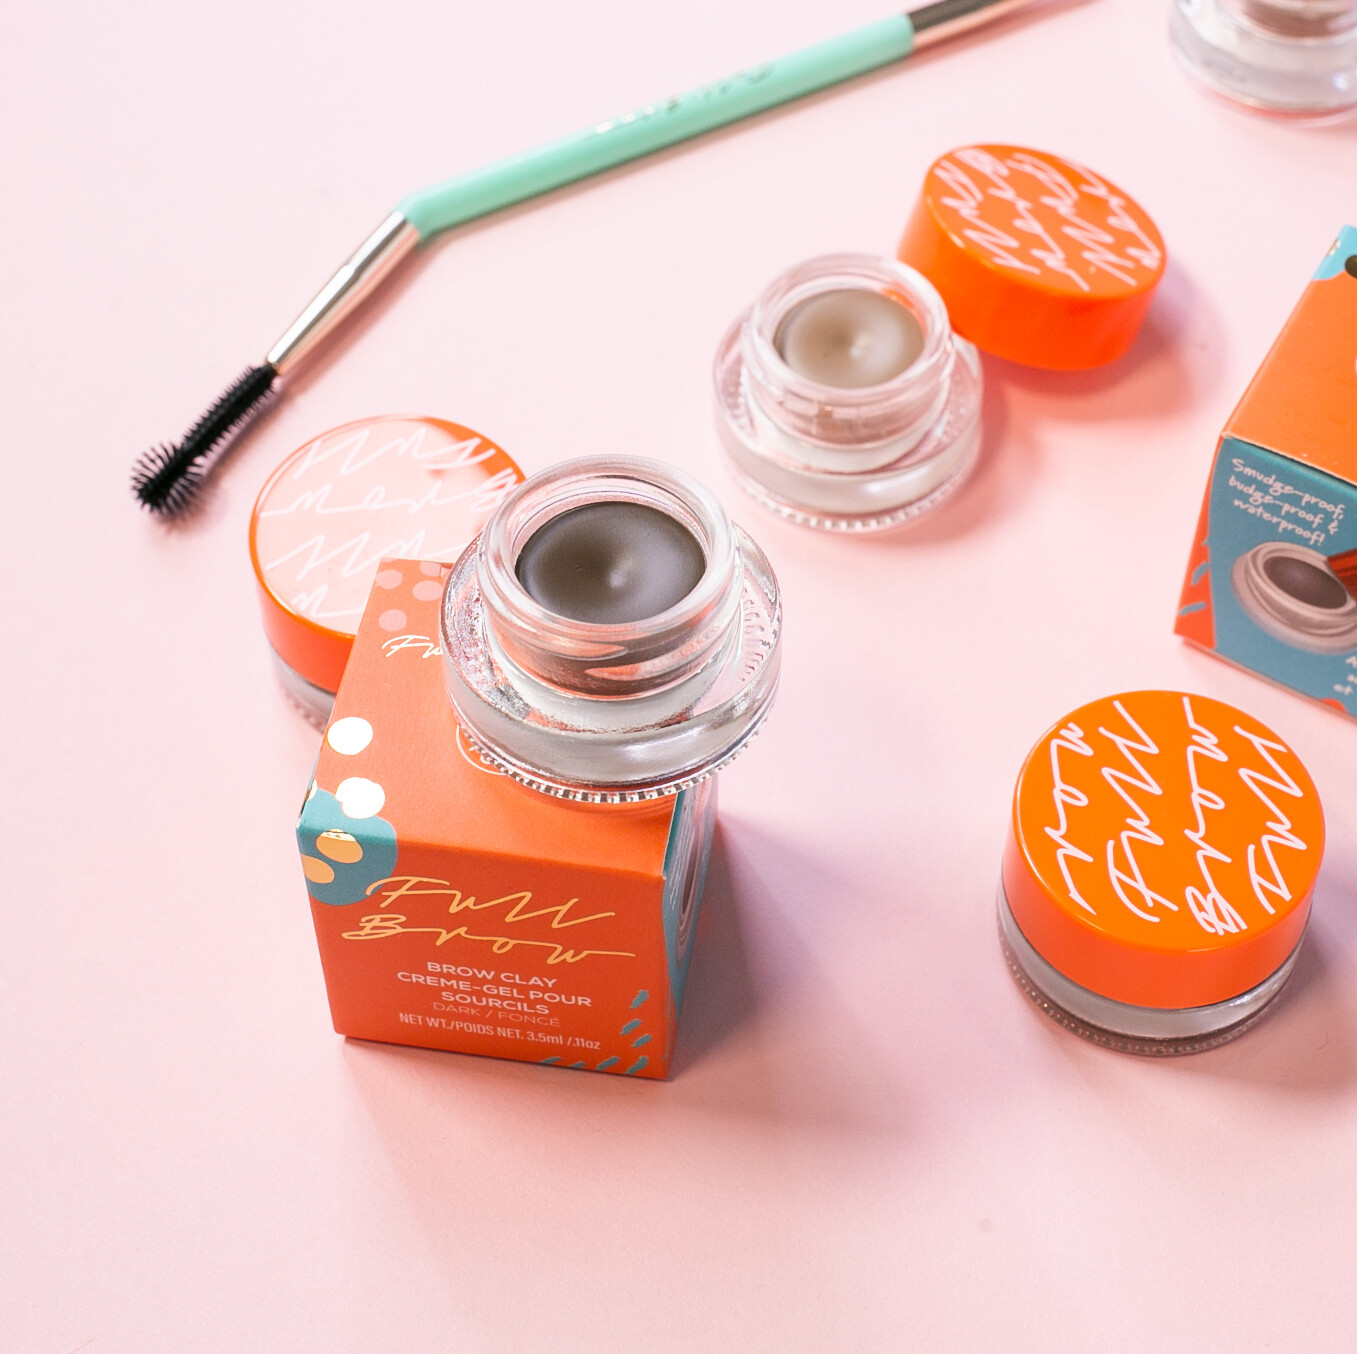 Full Brow - Brow Clay